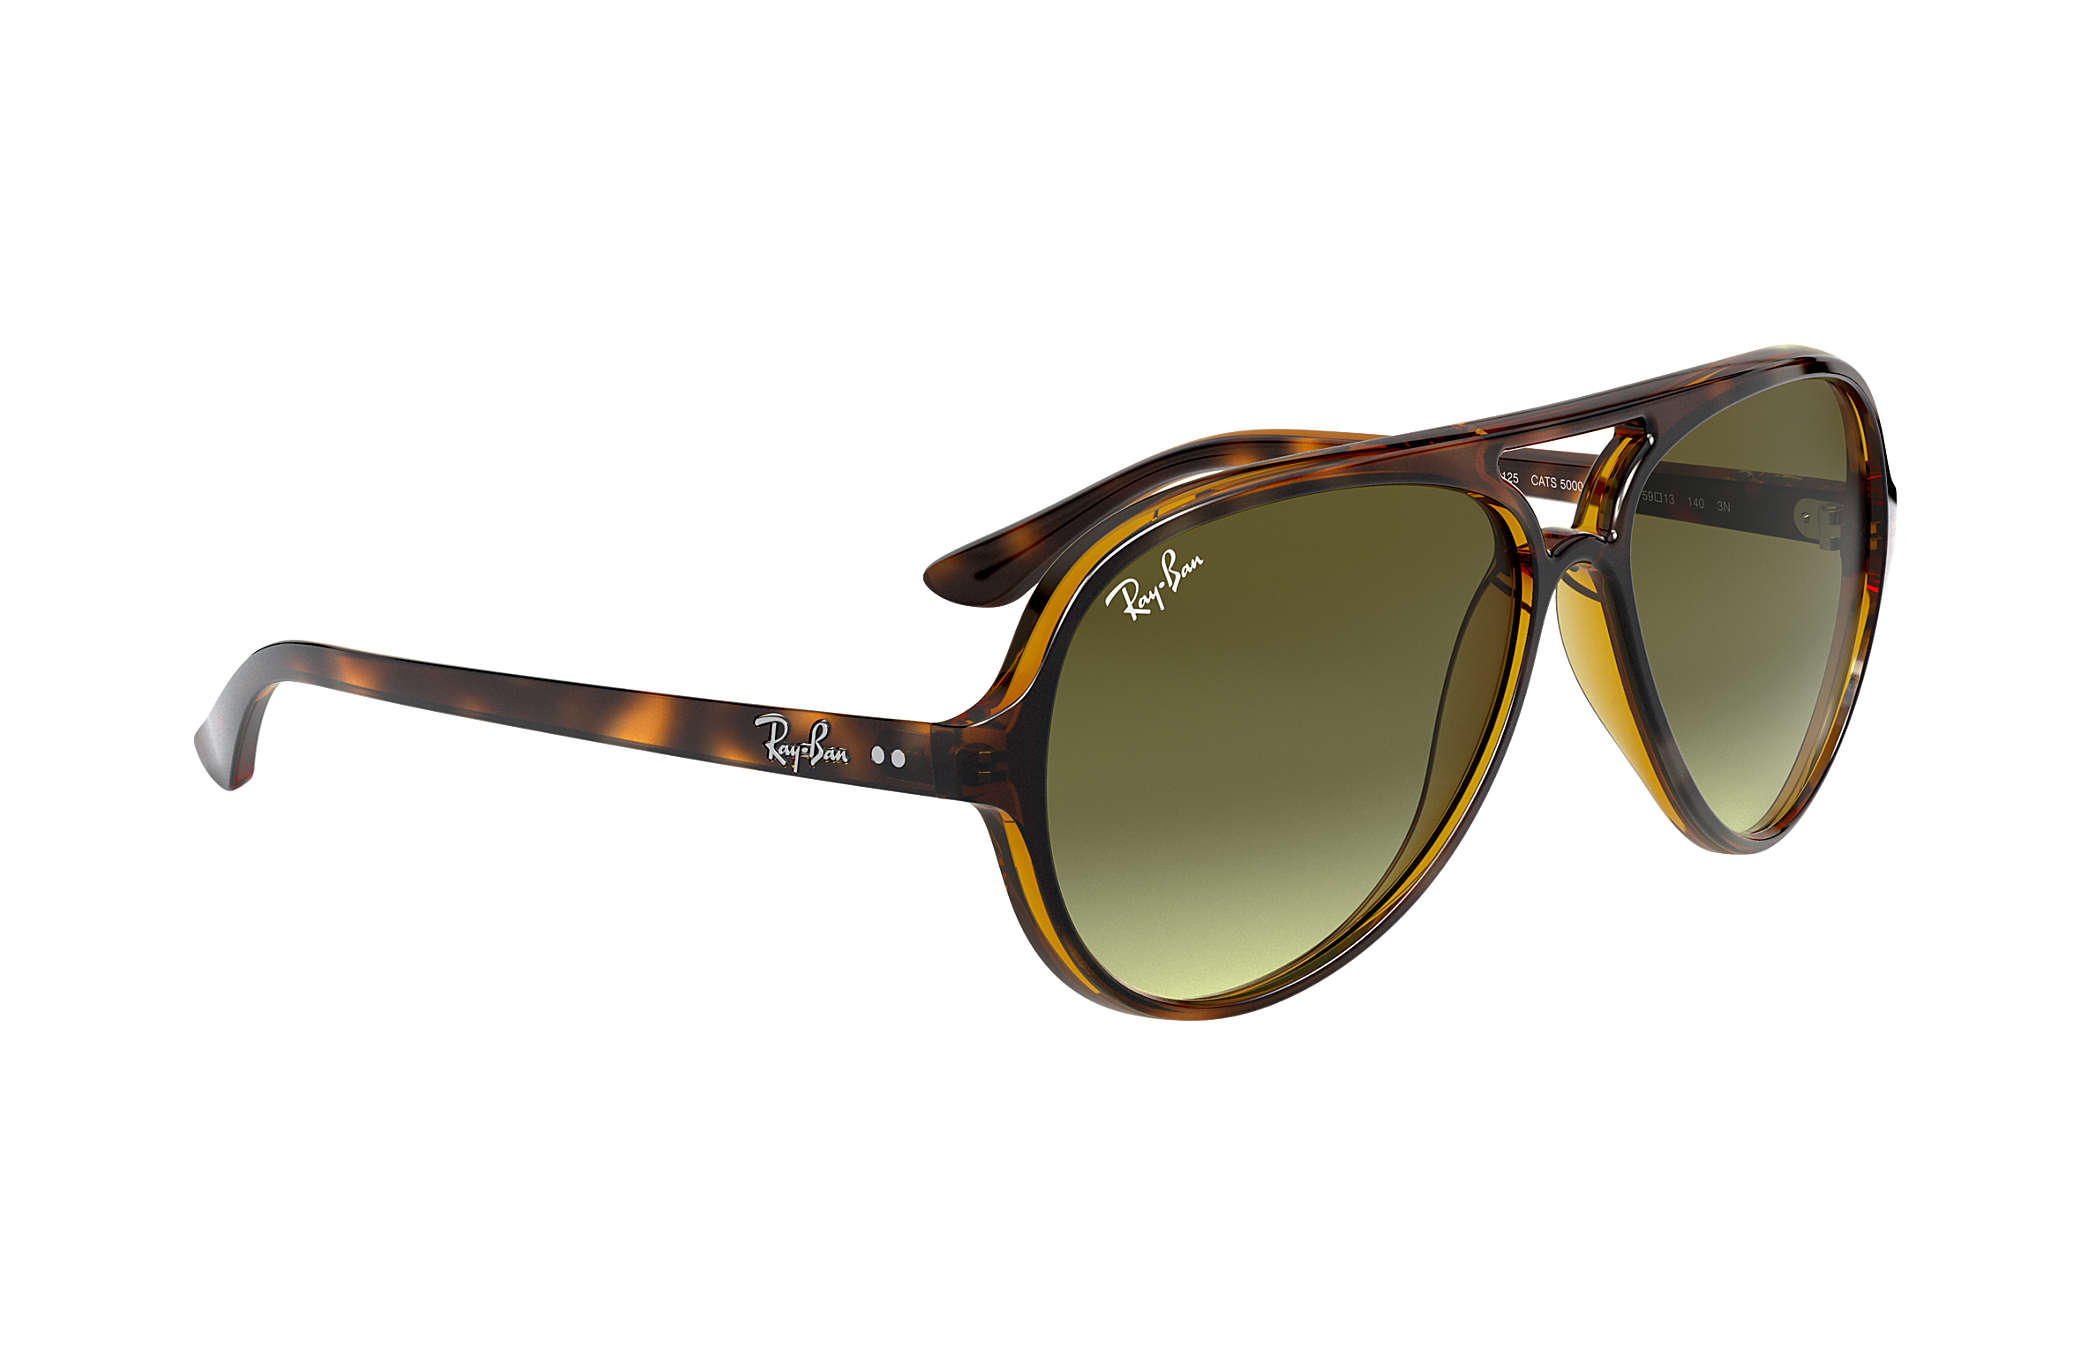 fc676c3d2f ... frame pink brown gradient official store ray ban 0rb4125 cats 5000  classic tortoise sun db91f 63dec ...